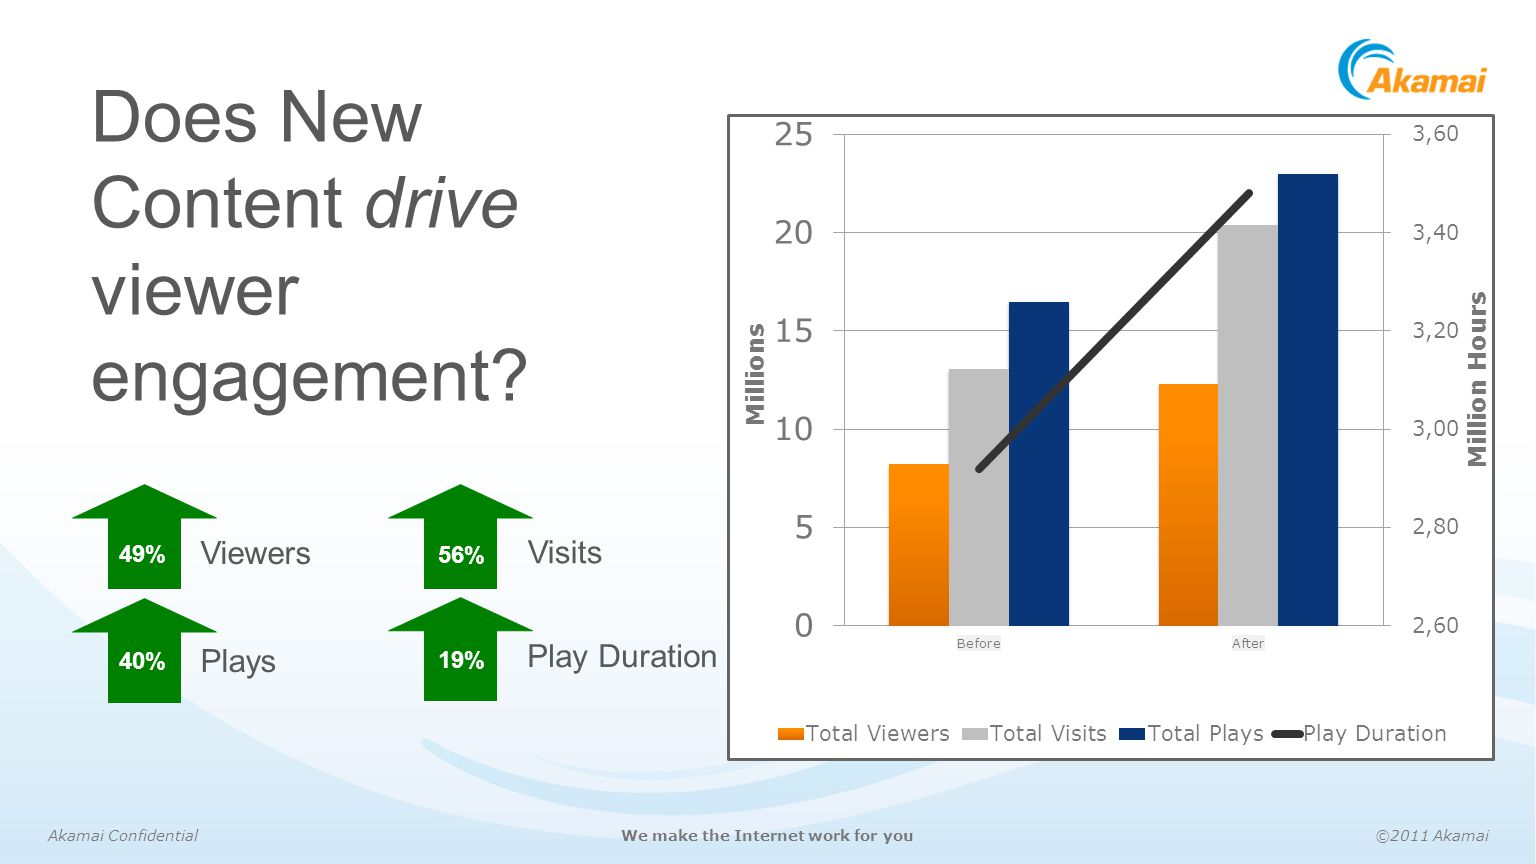 Does New Content drive viewer engagement